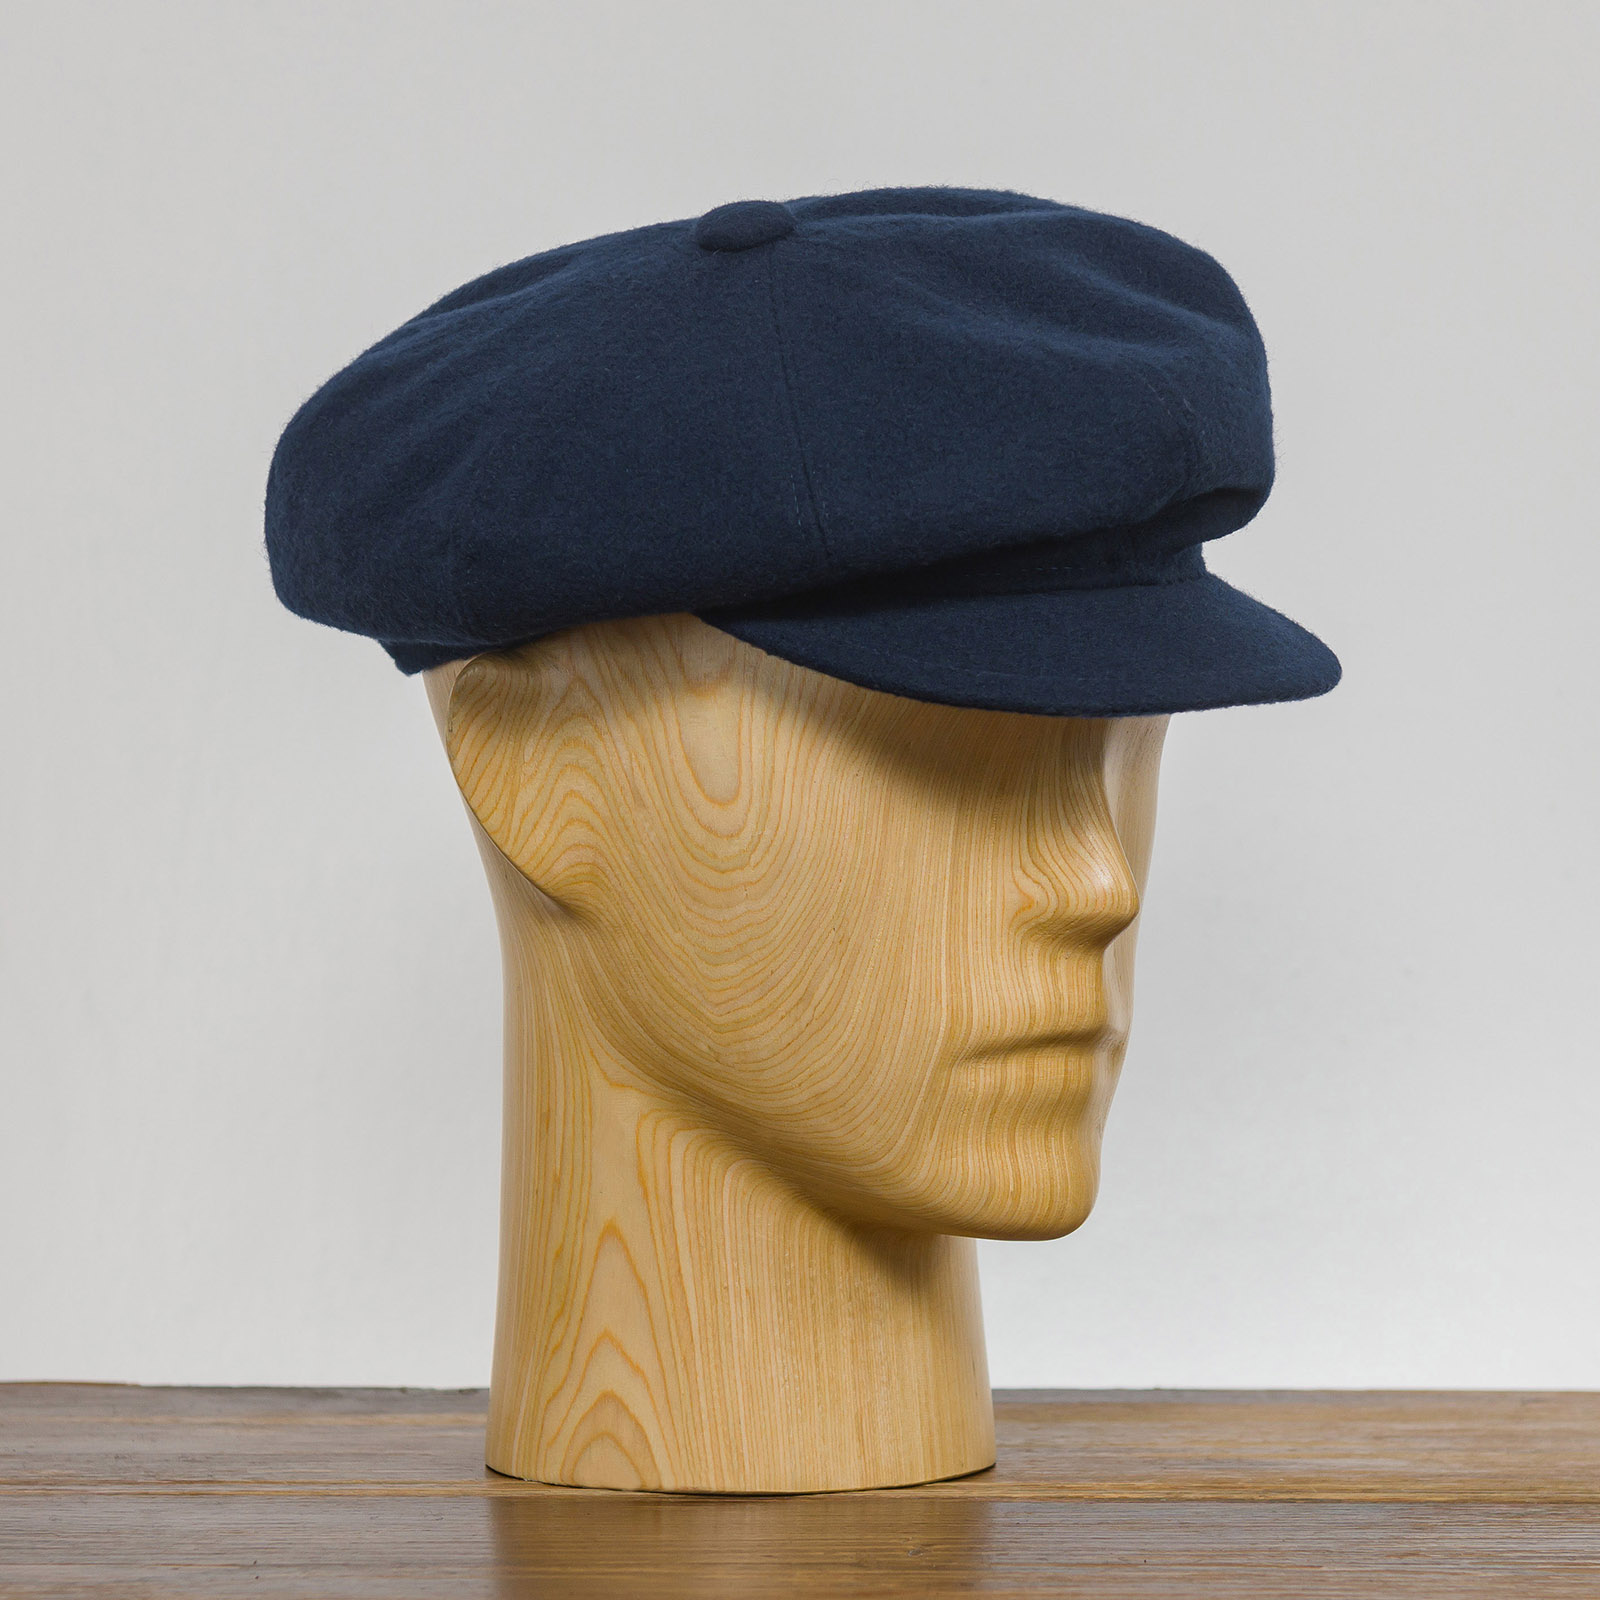 e68c073f0 Newsboy 8 panels cap sewed with woolen cloth - viscose lining